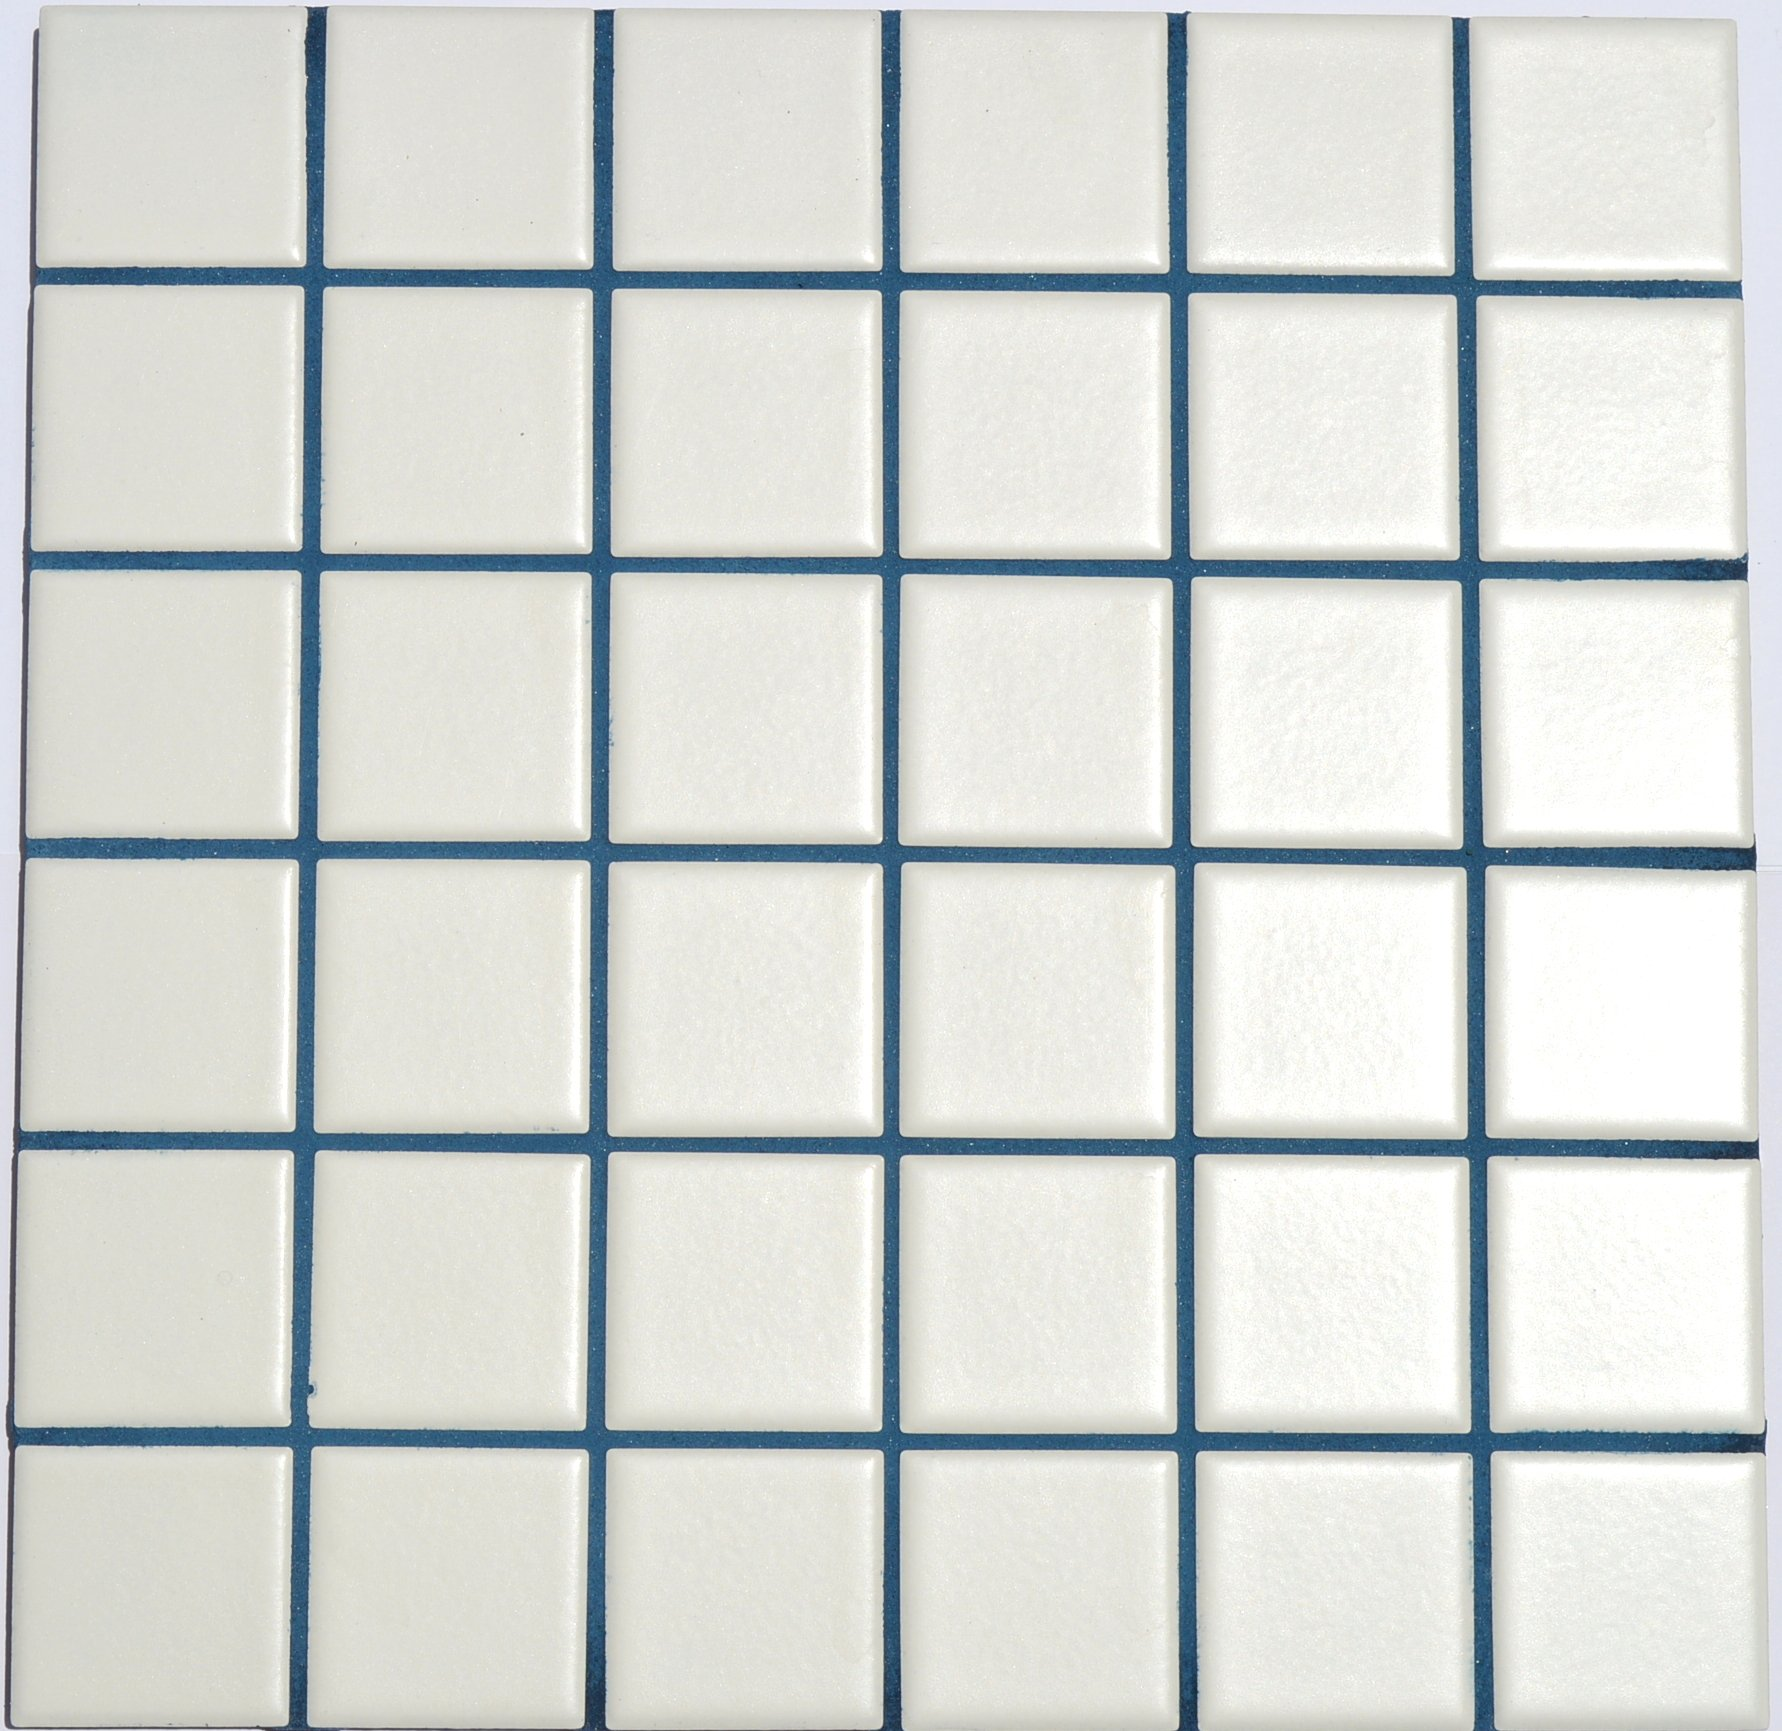 Pacifica Unsanded Tile Grout - 10 lbs - with Blue Pigment in The Mix.